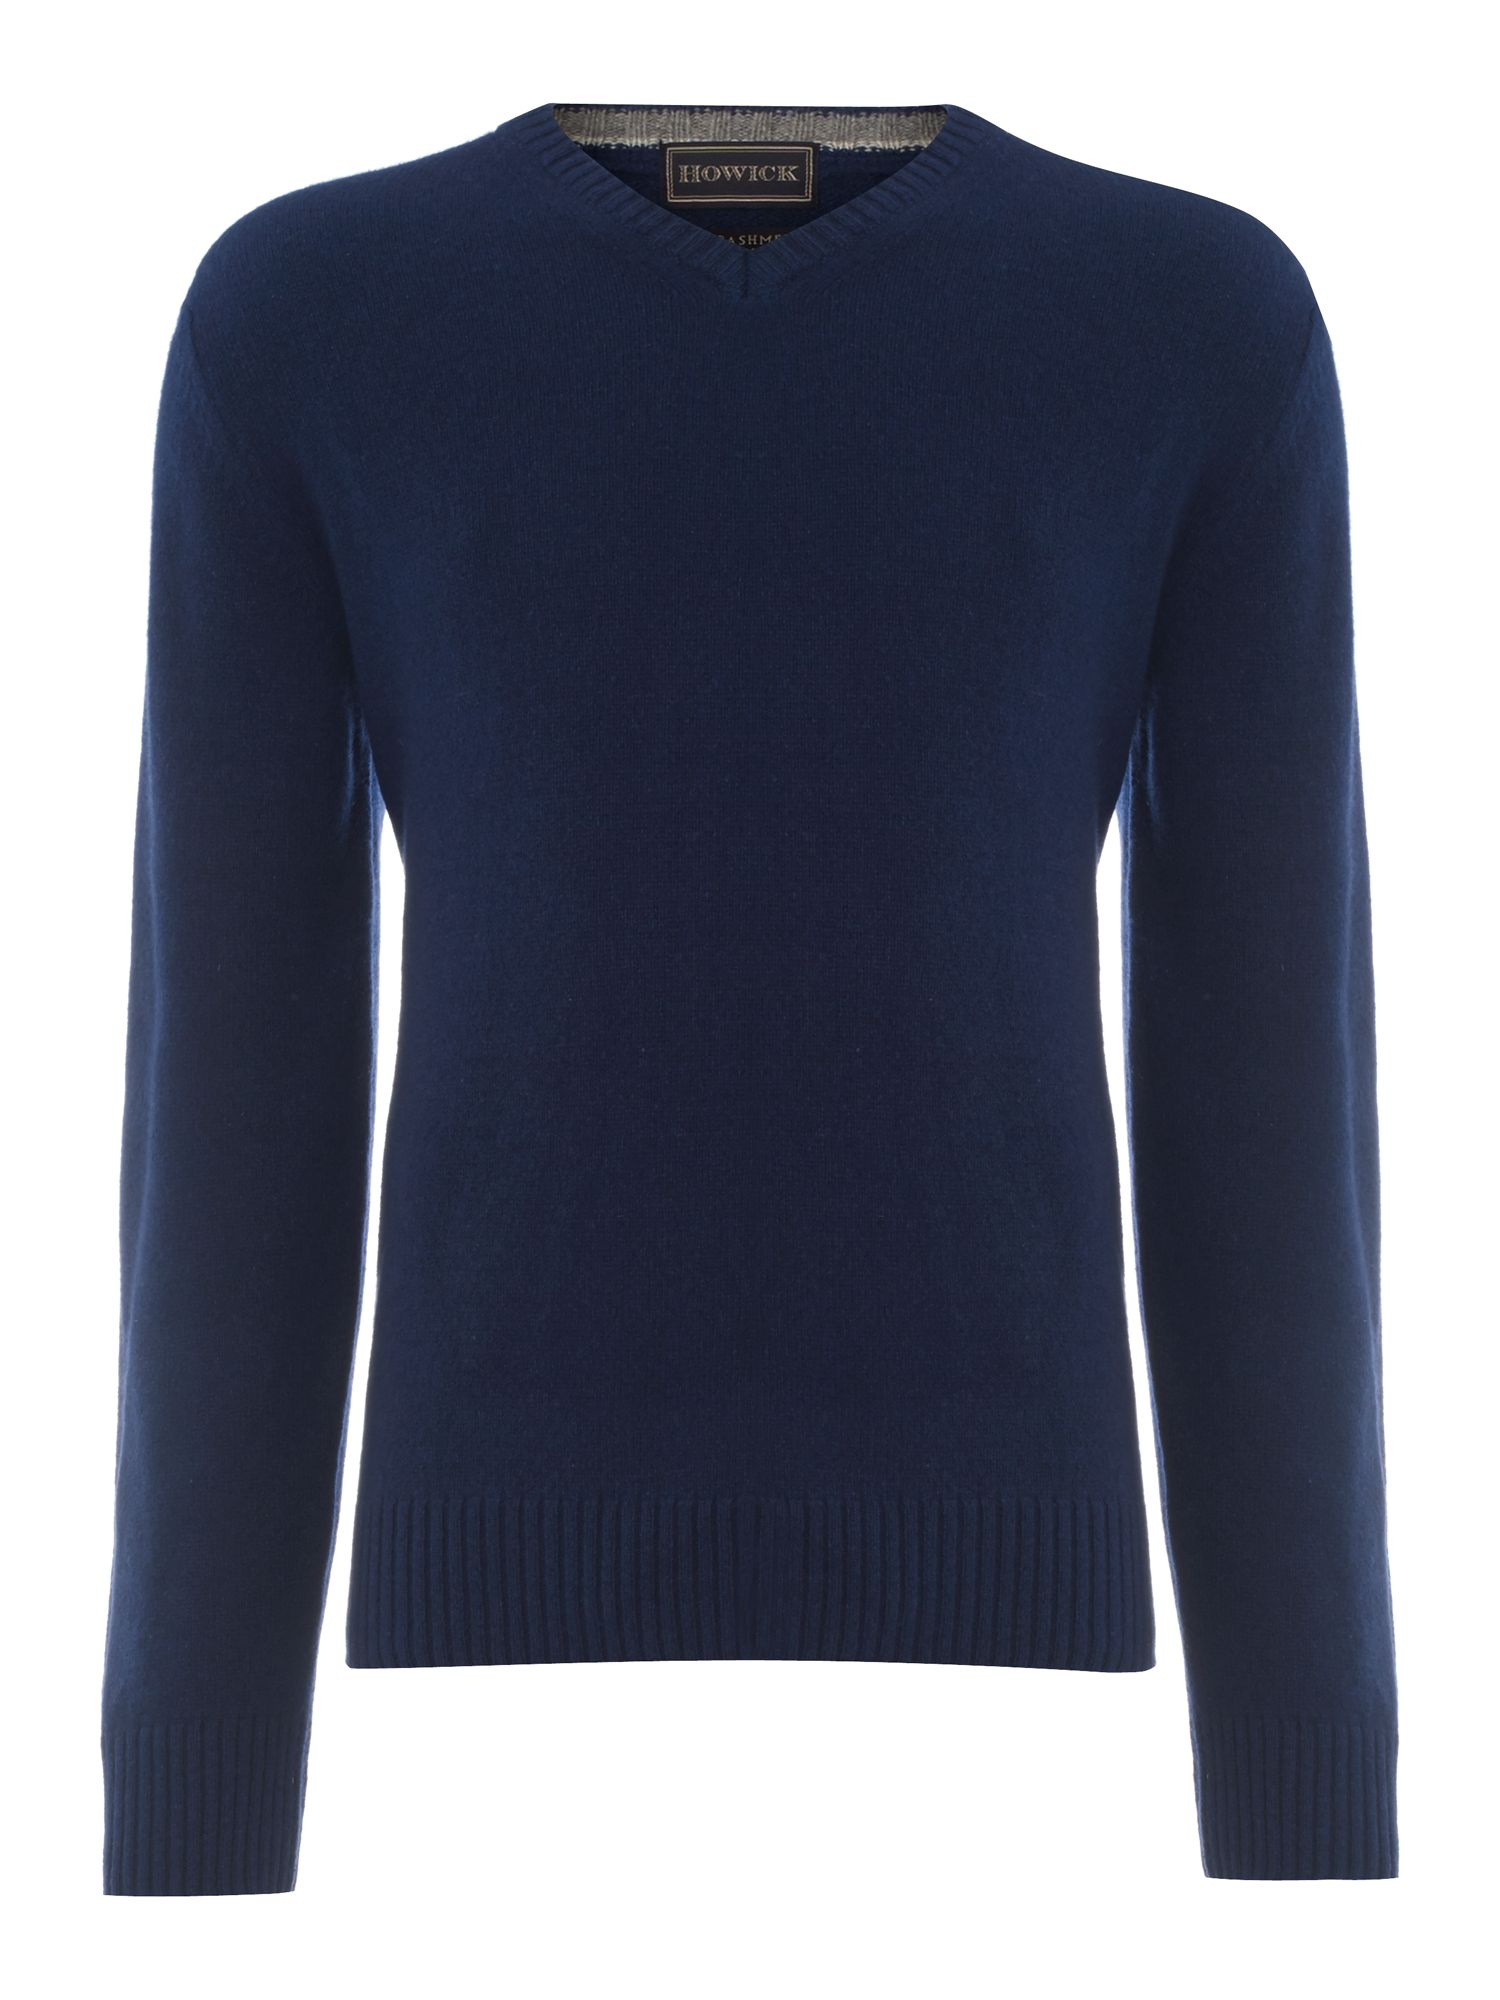 Cashmere v-neck jumper made in Italy